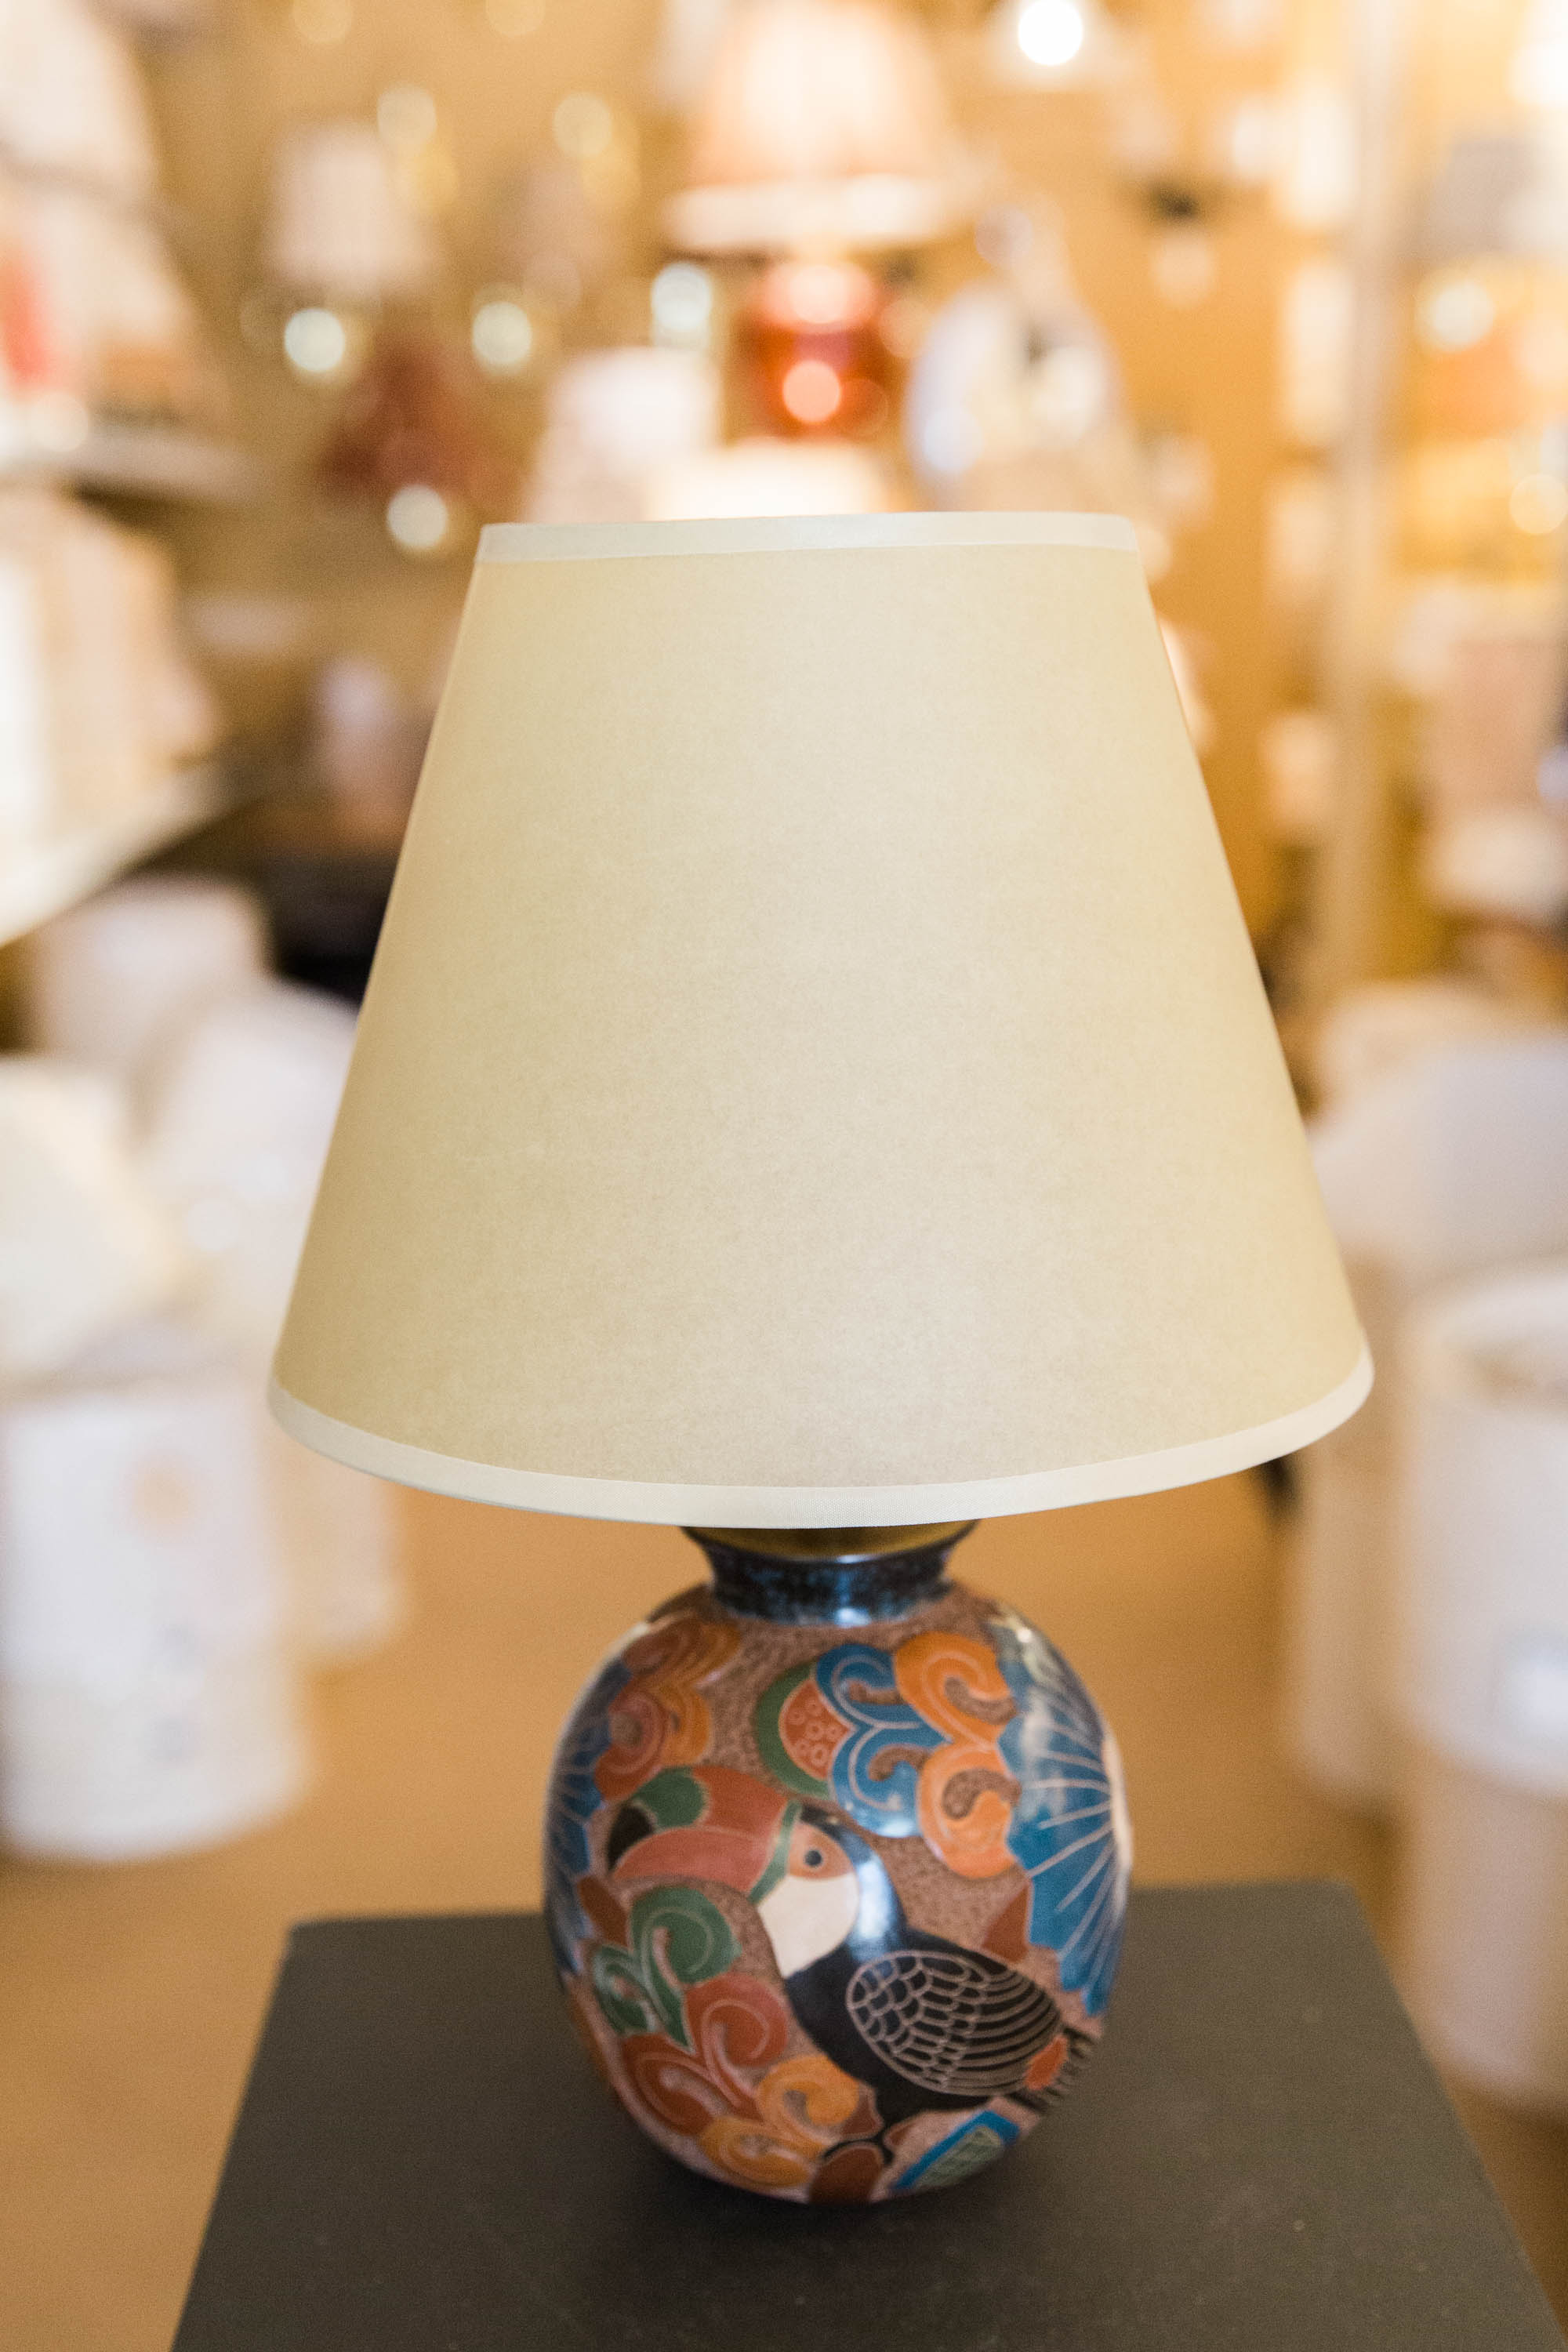 New at our shop nicaraguan carved wood lamps concord lamp and shade clas91715 18 clas91715 24 mozeypictures Images